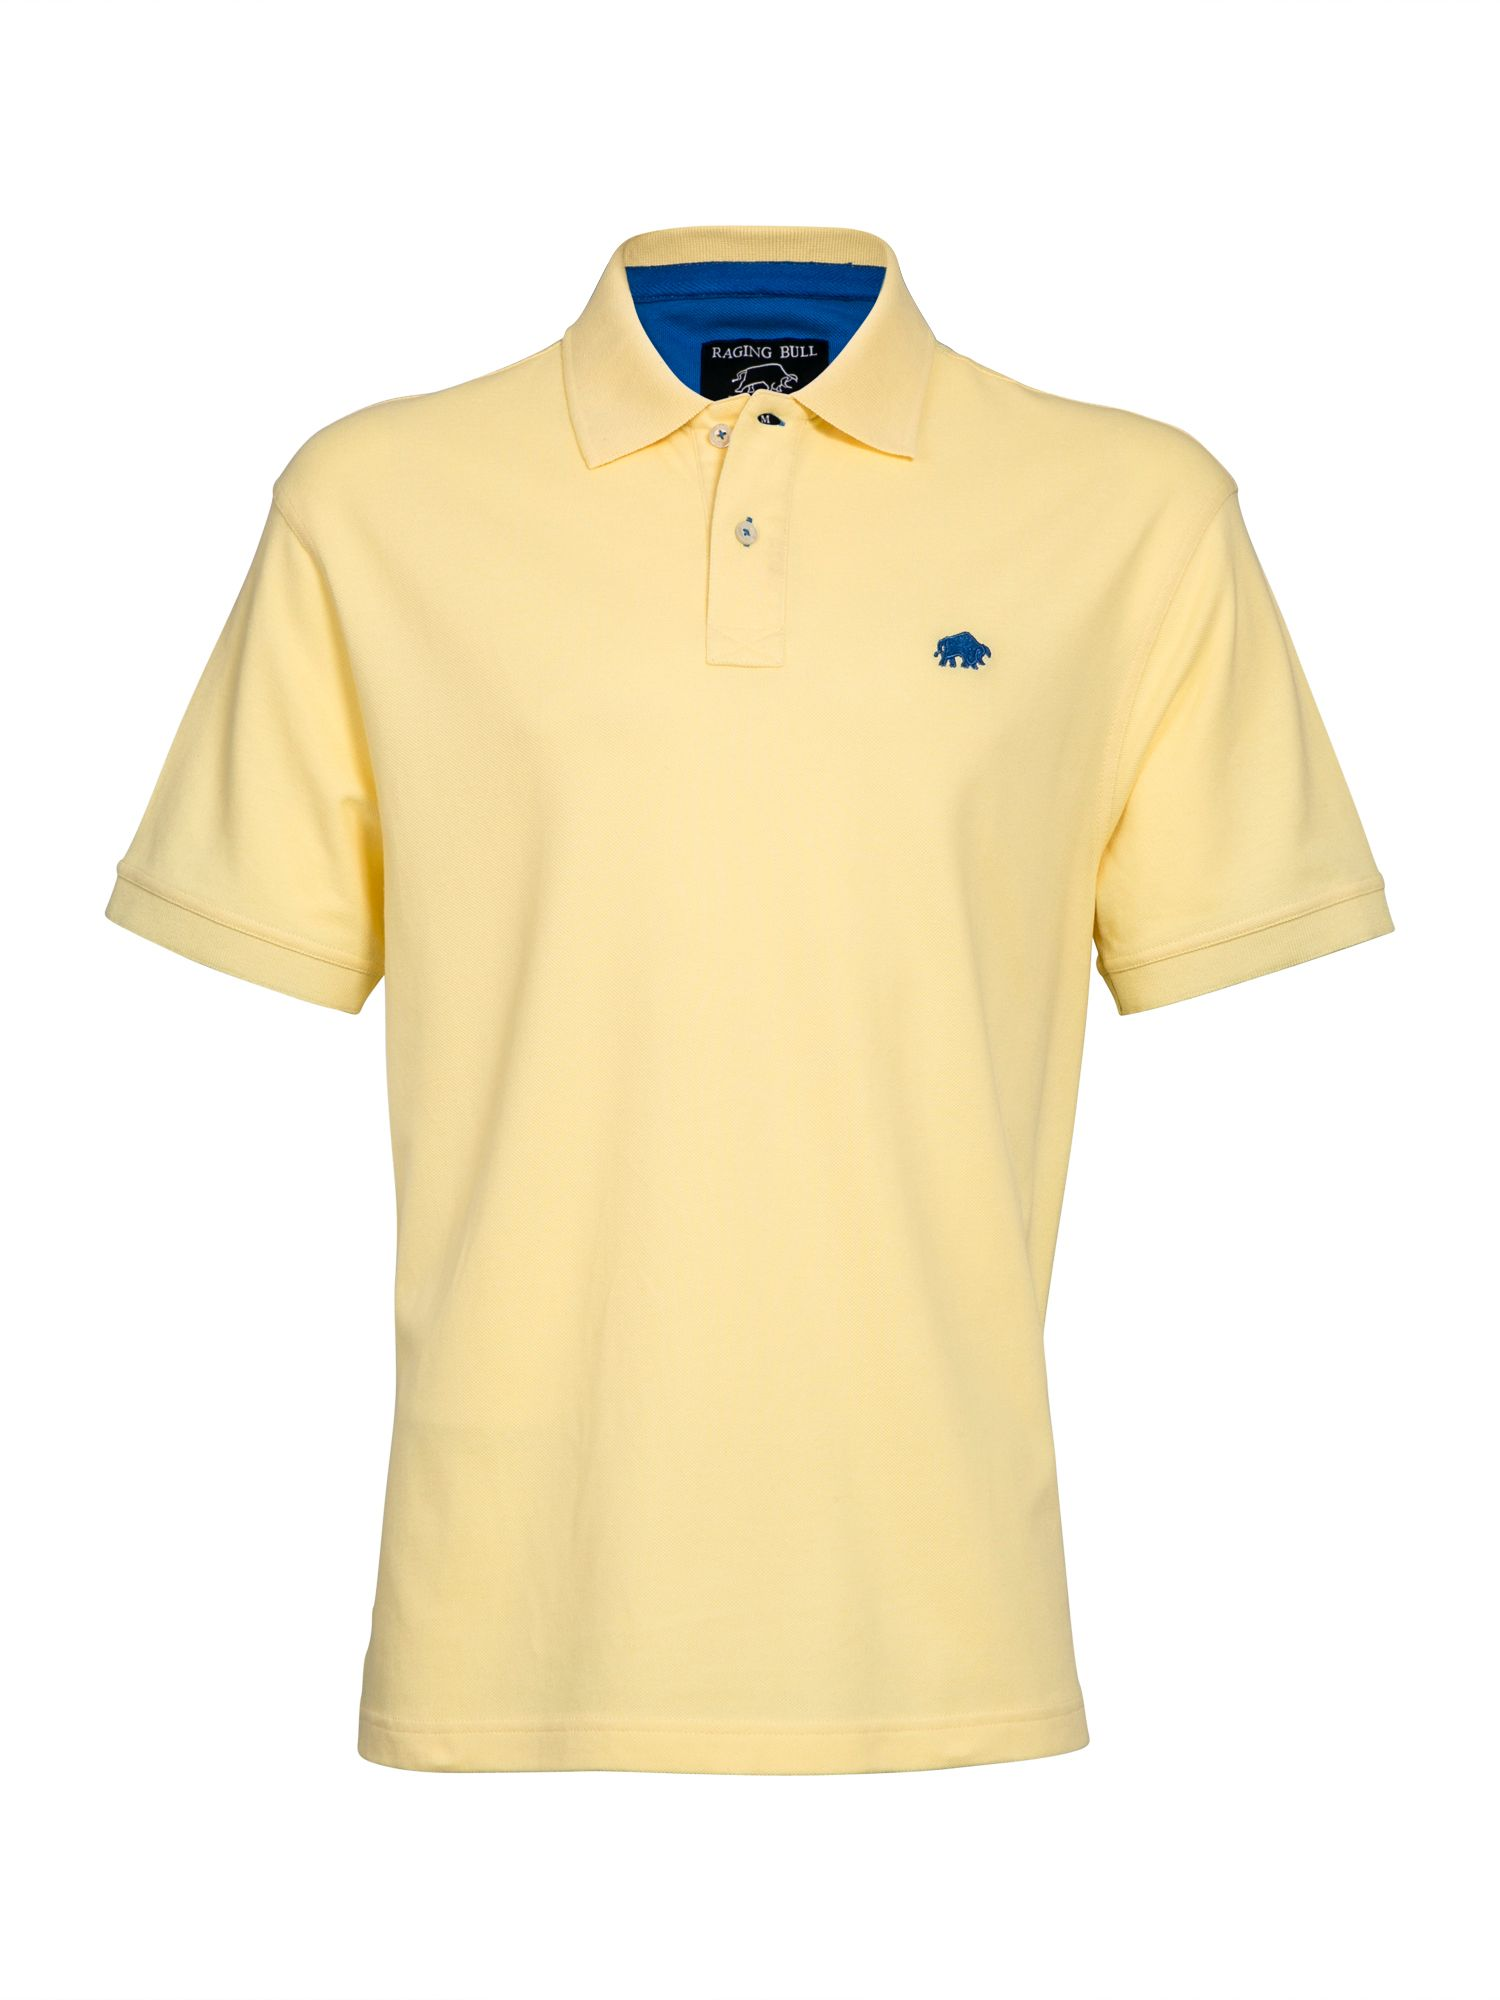 Men's Raging Bull New Signature Polo Shirt, Lemon